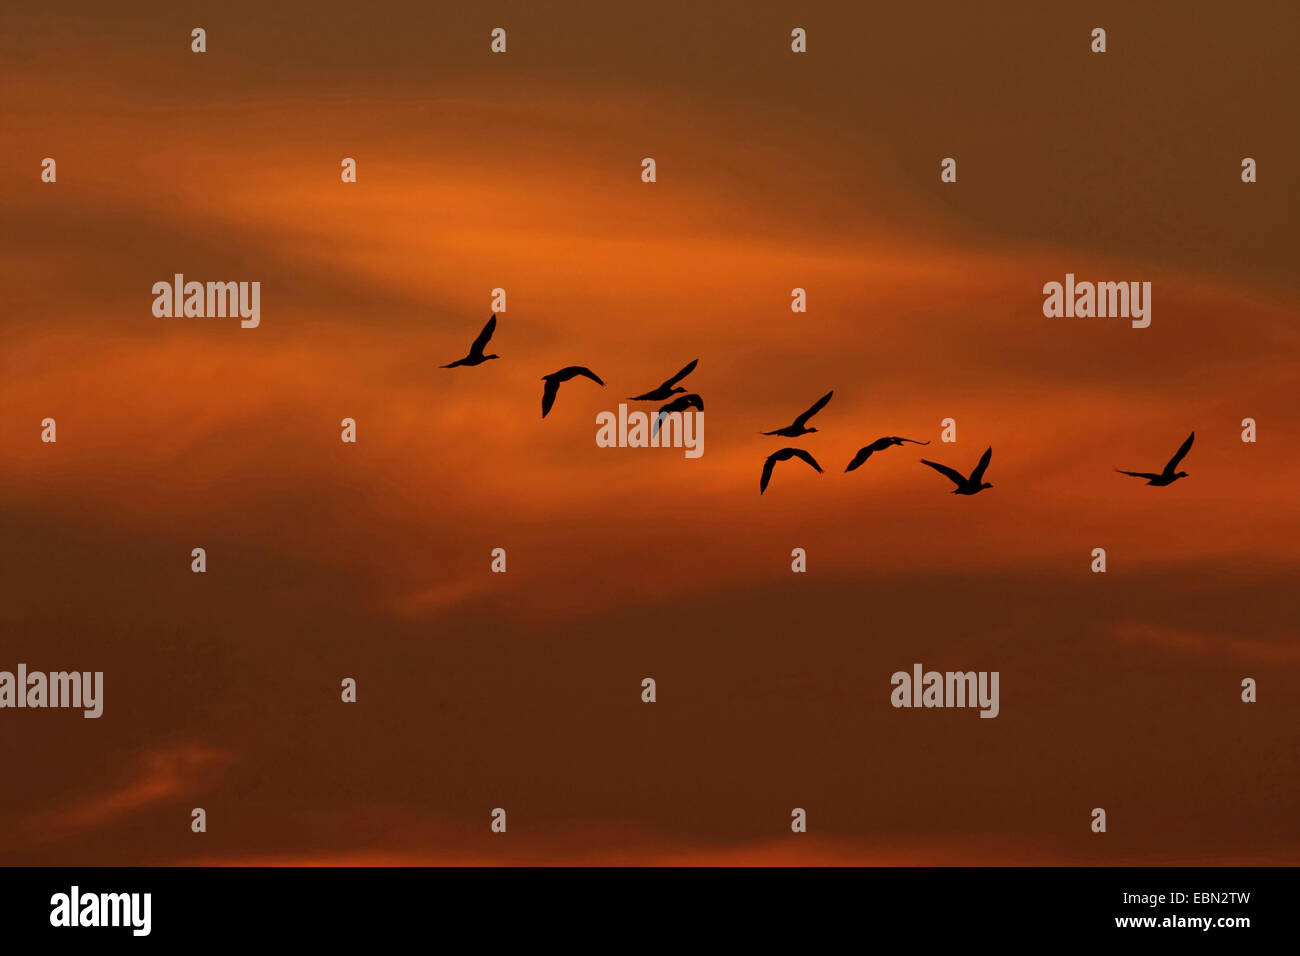 greylag goose (Anser anser), migratory birds at the morning sky in October, Germany Stock Photo